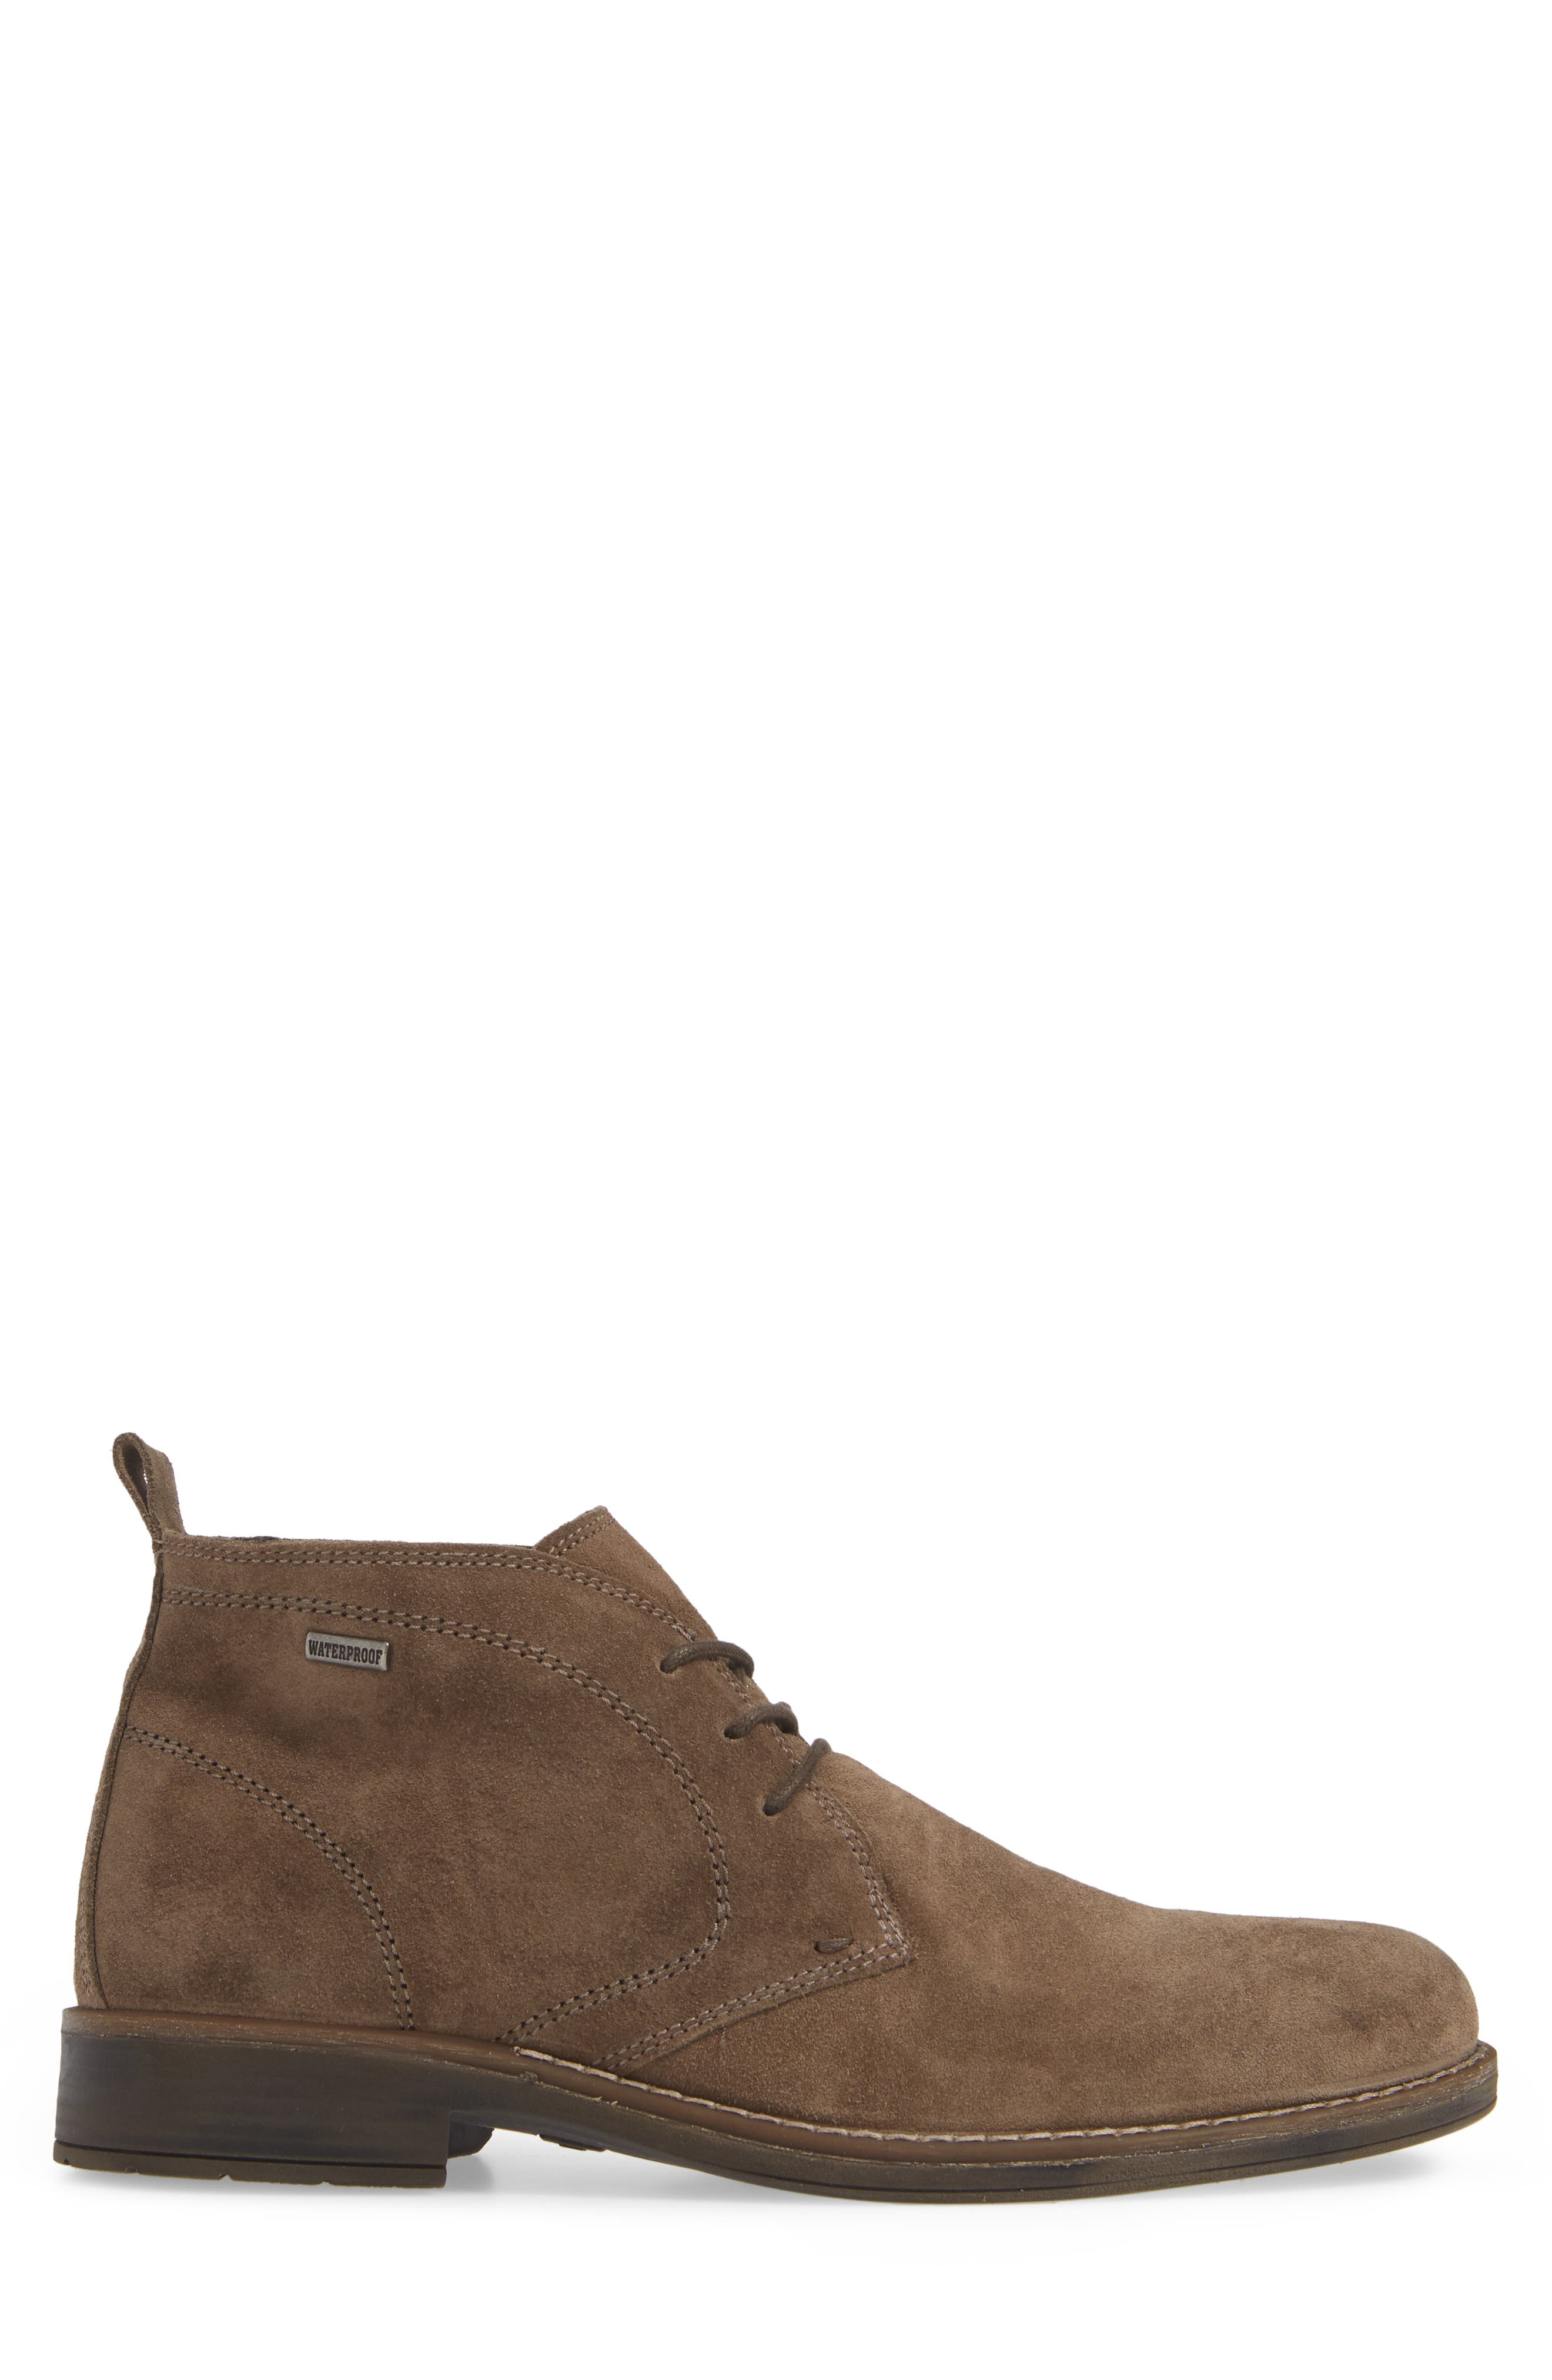 Stevens Waterproof Chukka Boot,                             Alternate thumbnail 3, color,                             250